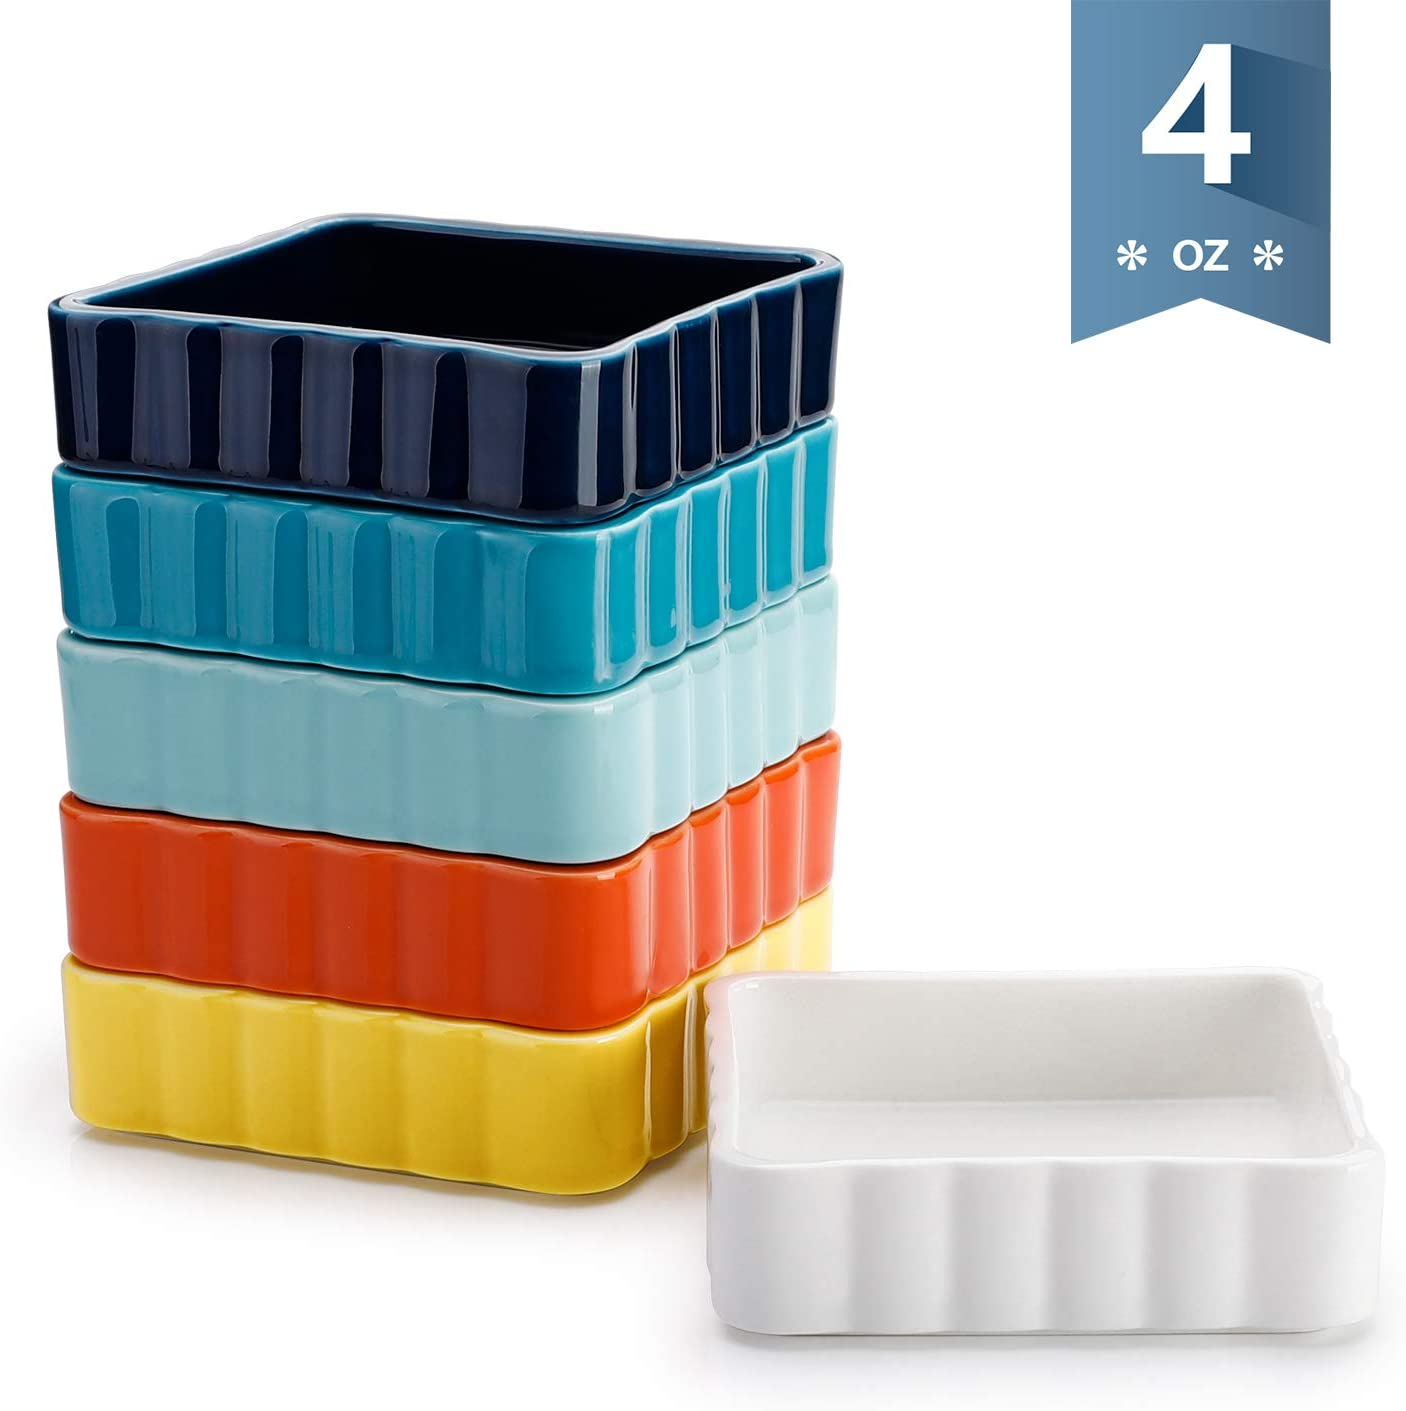 Sweese 508.002 Porcelain Ramekins 4 Ounce Creme Brulee Dish, Square, Set of 6, Hot Assorted Color